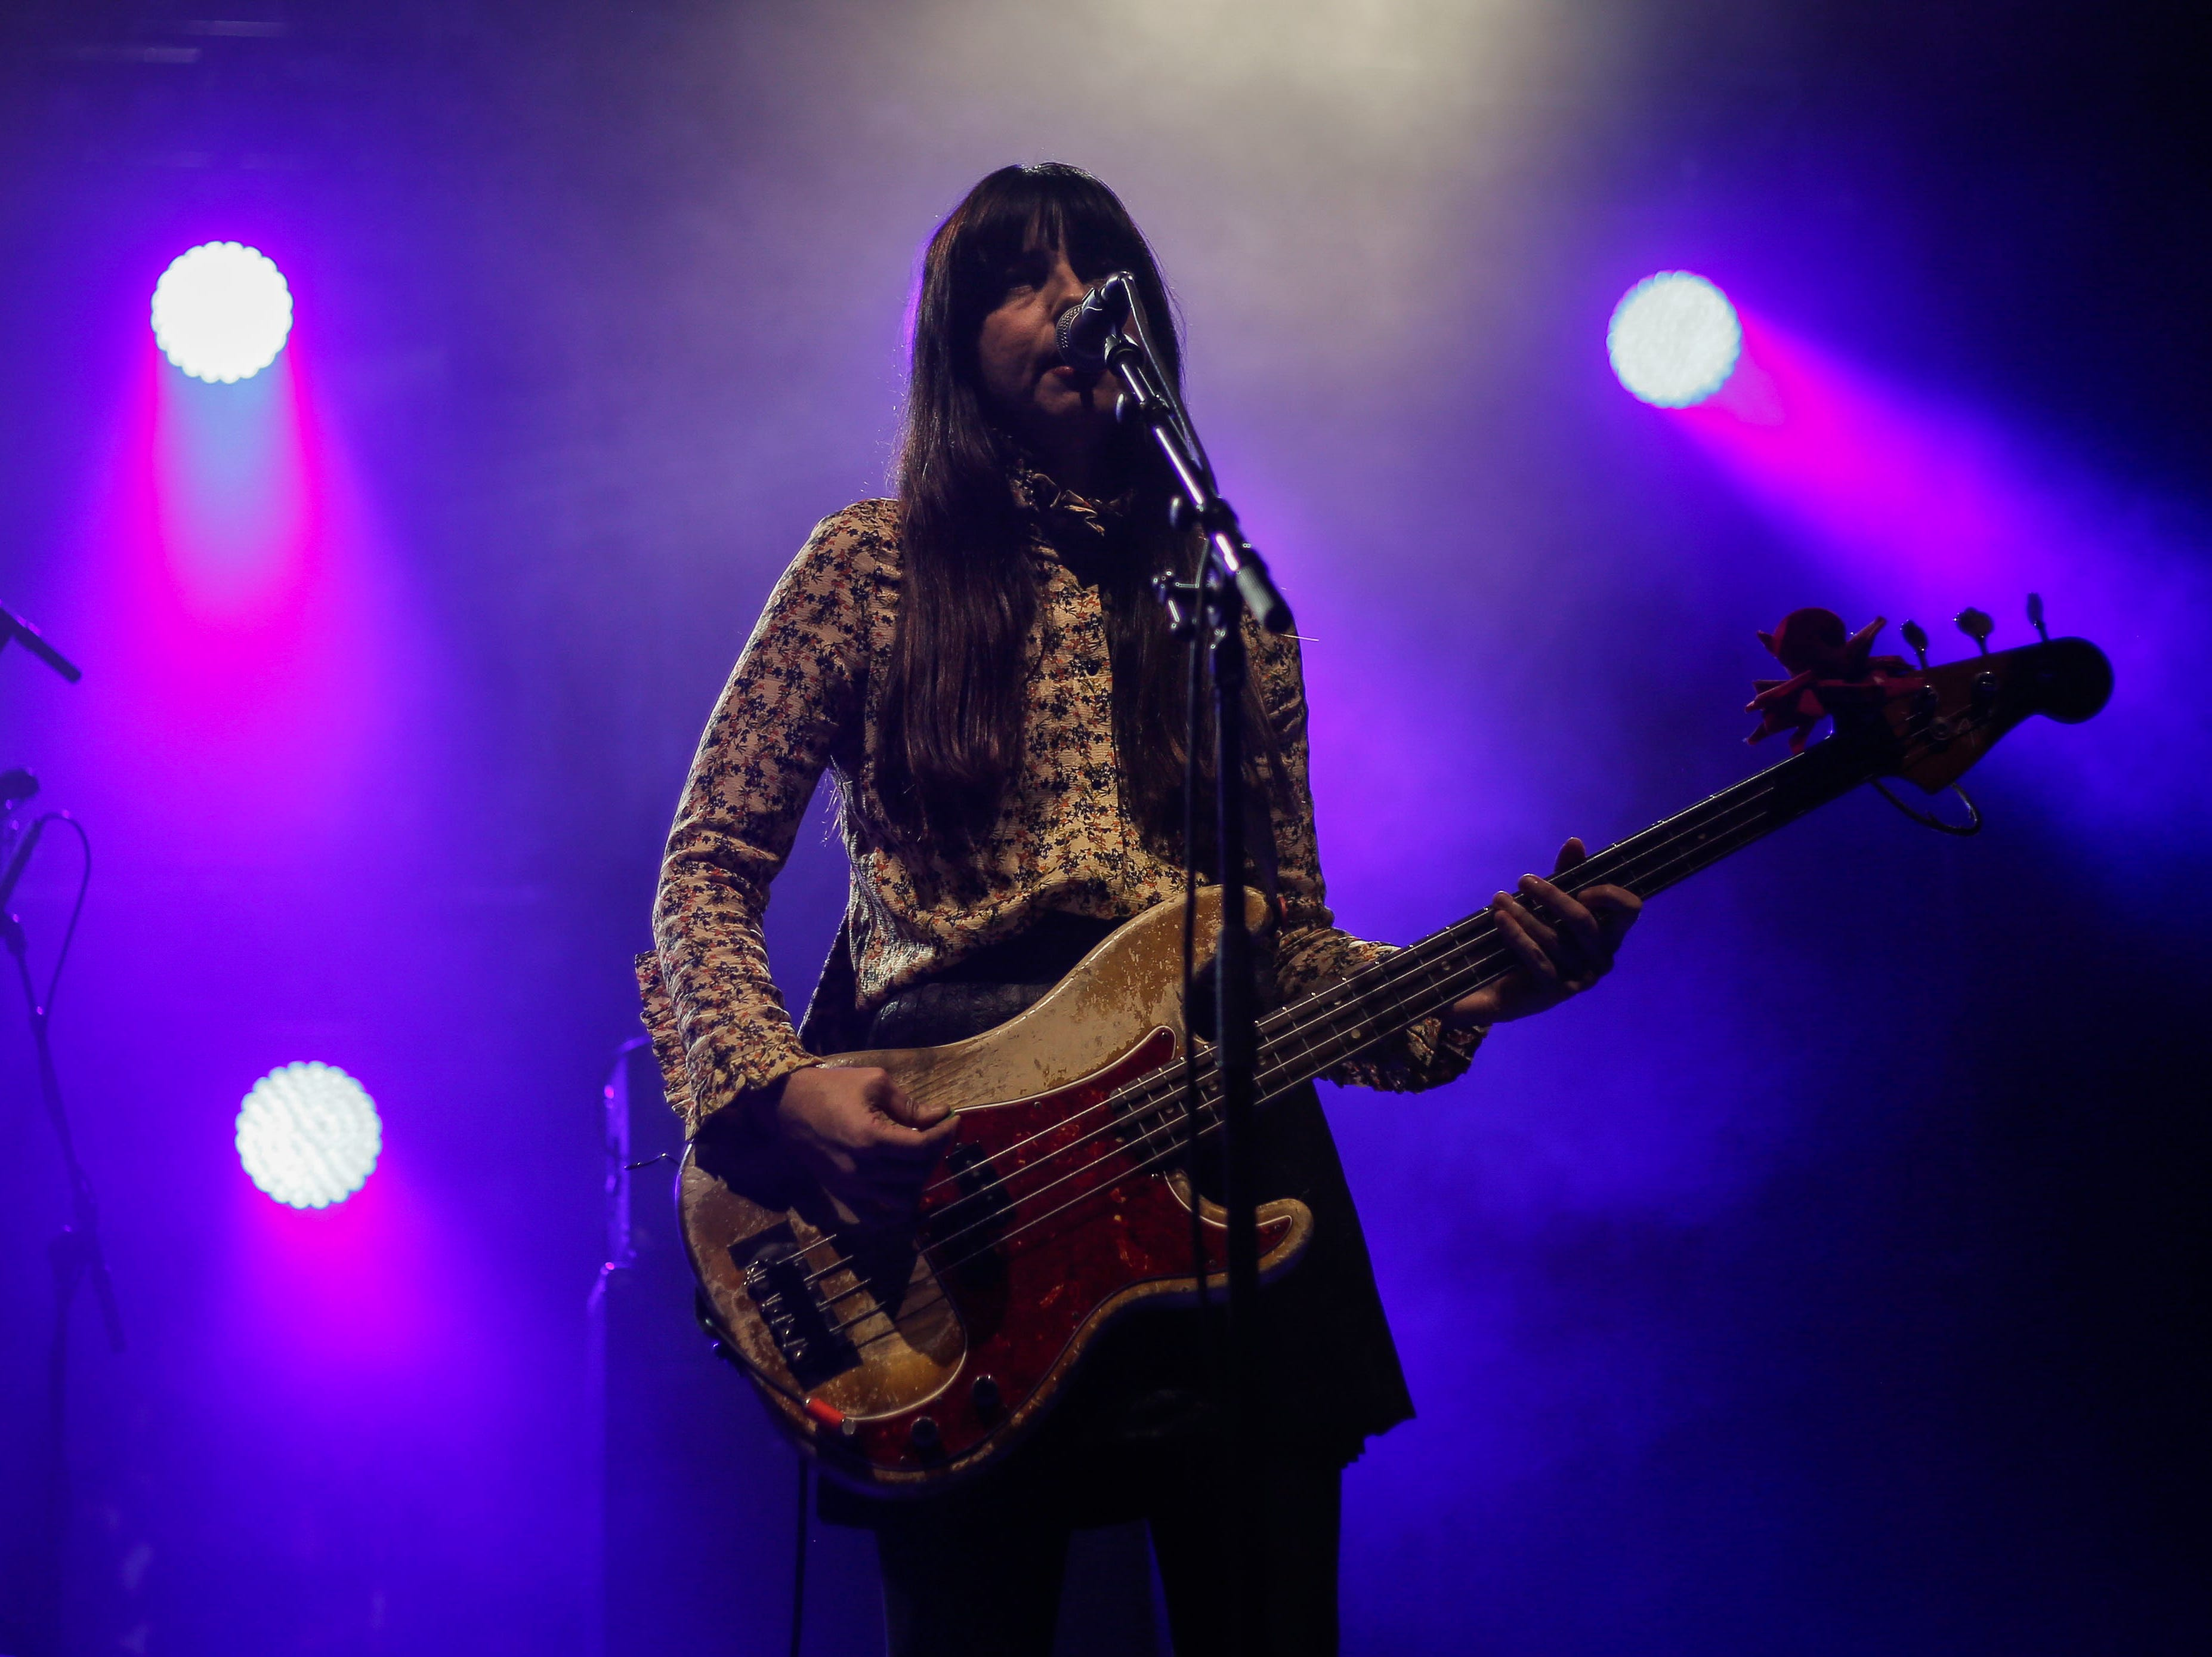 Paz Lenchantin, The Pixies bassist, performs during the first show of the  Weezer x Pixies 2019 tour at the KFC Yum! Center in downtown Louisville, Ky. on Friday, March 8, 2019.